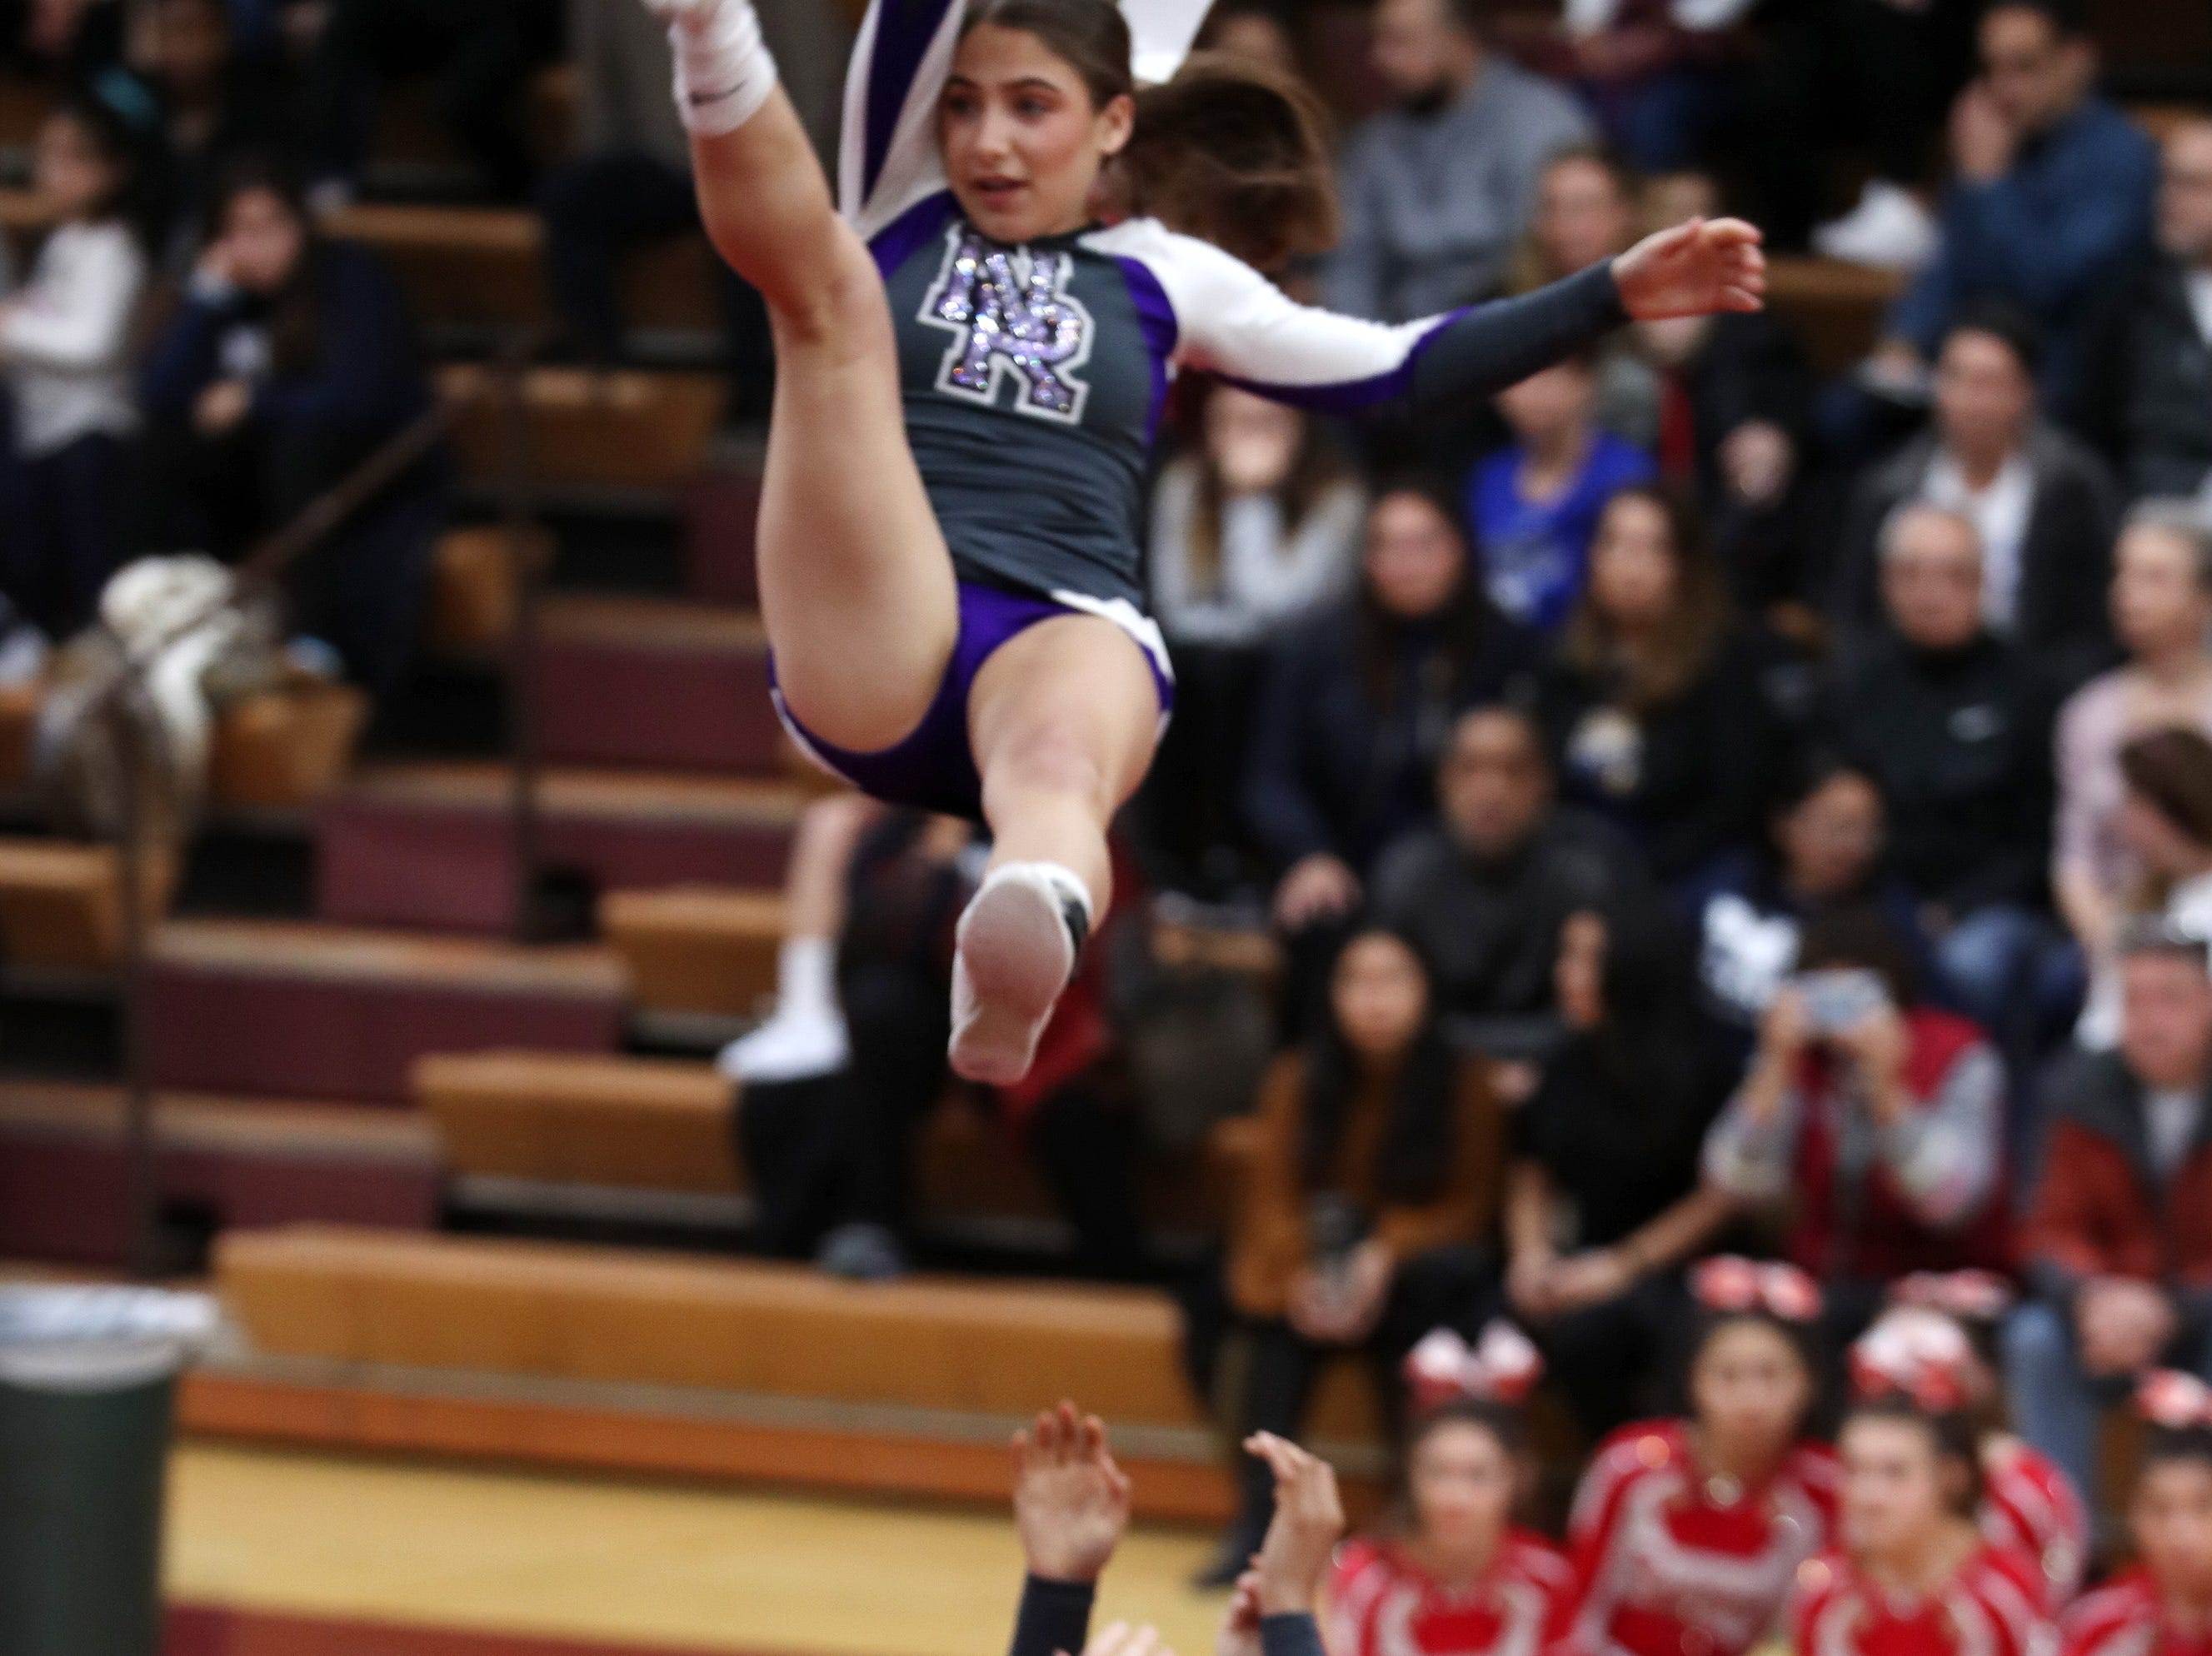 New Rochelle High School competes during the Section 1 cheerleading championships at Arlington High School in Freedom Plains Feb. 16, 2019.